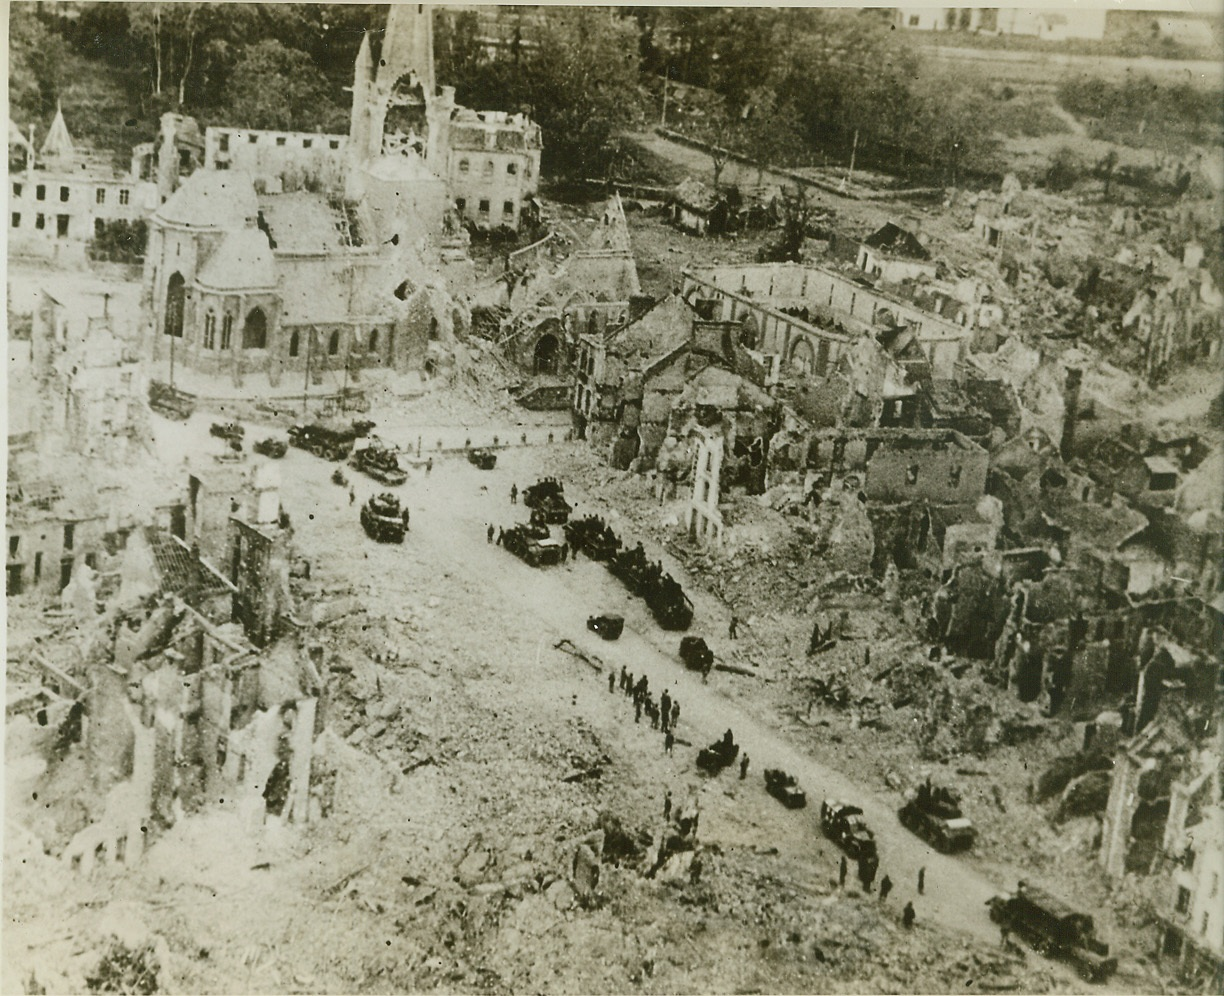 The Aftermath of Battle, 8/6/1944. PERIERS, FRANCE -- American tanks and trucks wend their way into Periers, a mass of destruction from the fierce battle that preceded its capture. American forces have stormed into Brest, France's 2nd port, completing the isolation of the Brittany Peninsula from German forces in the remainder of France. Credit (ACME) (WP);